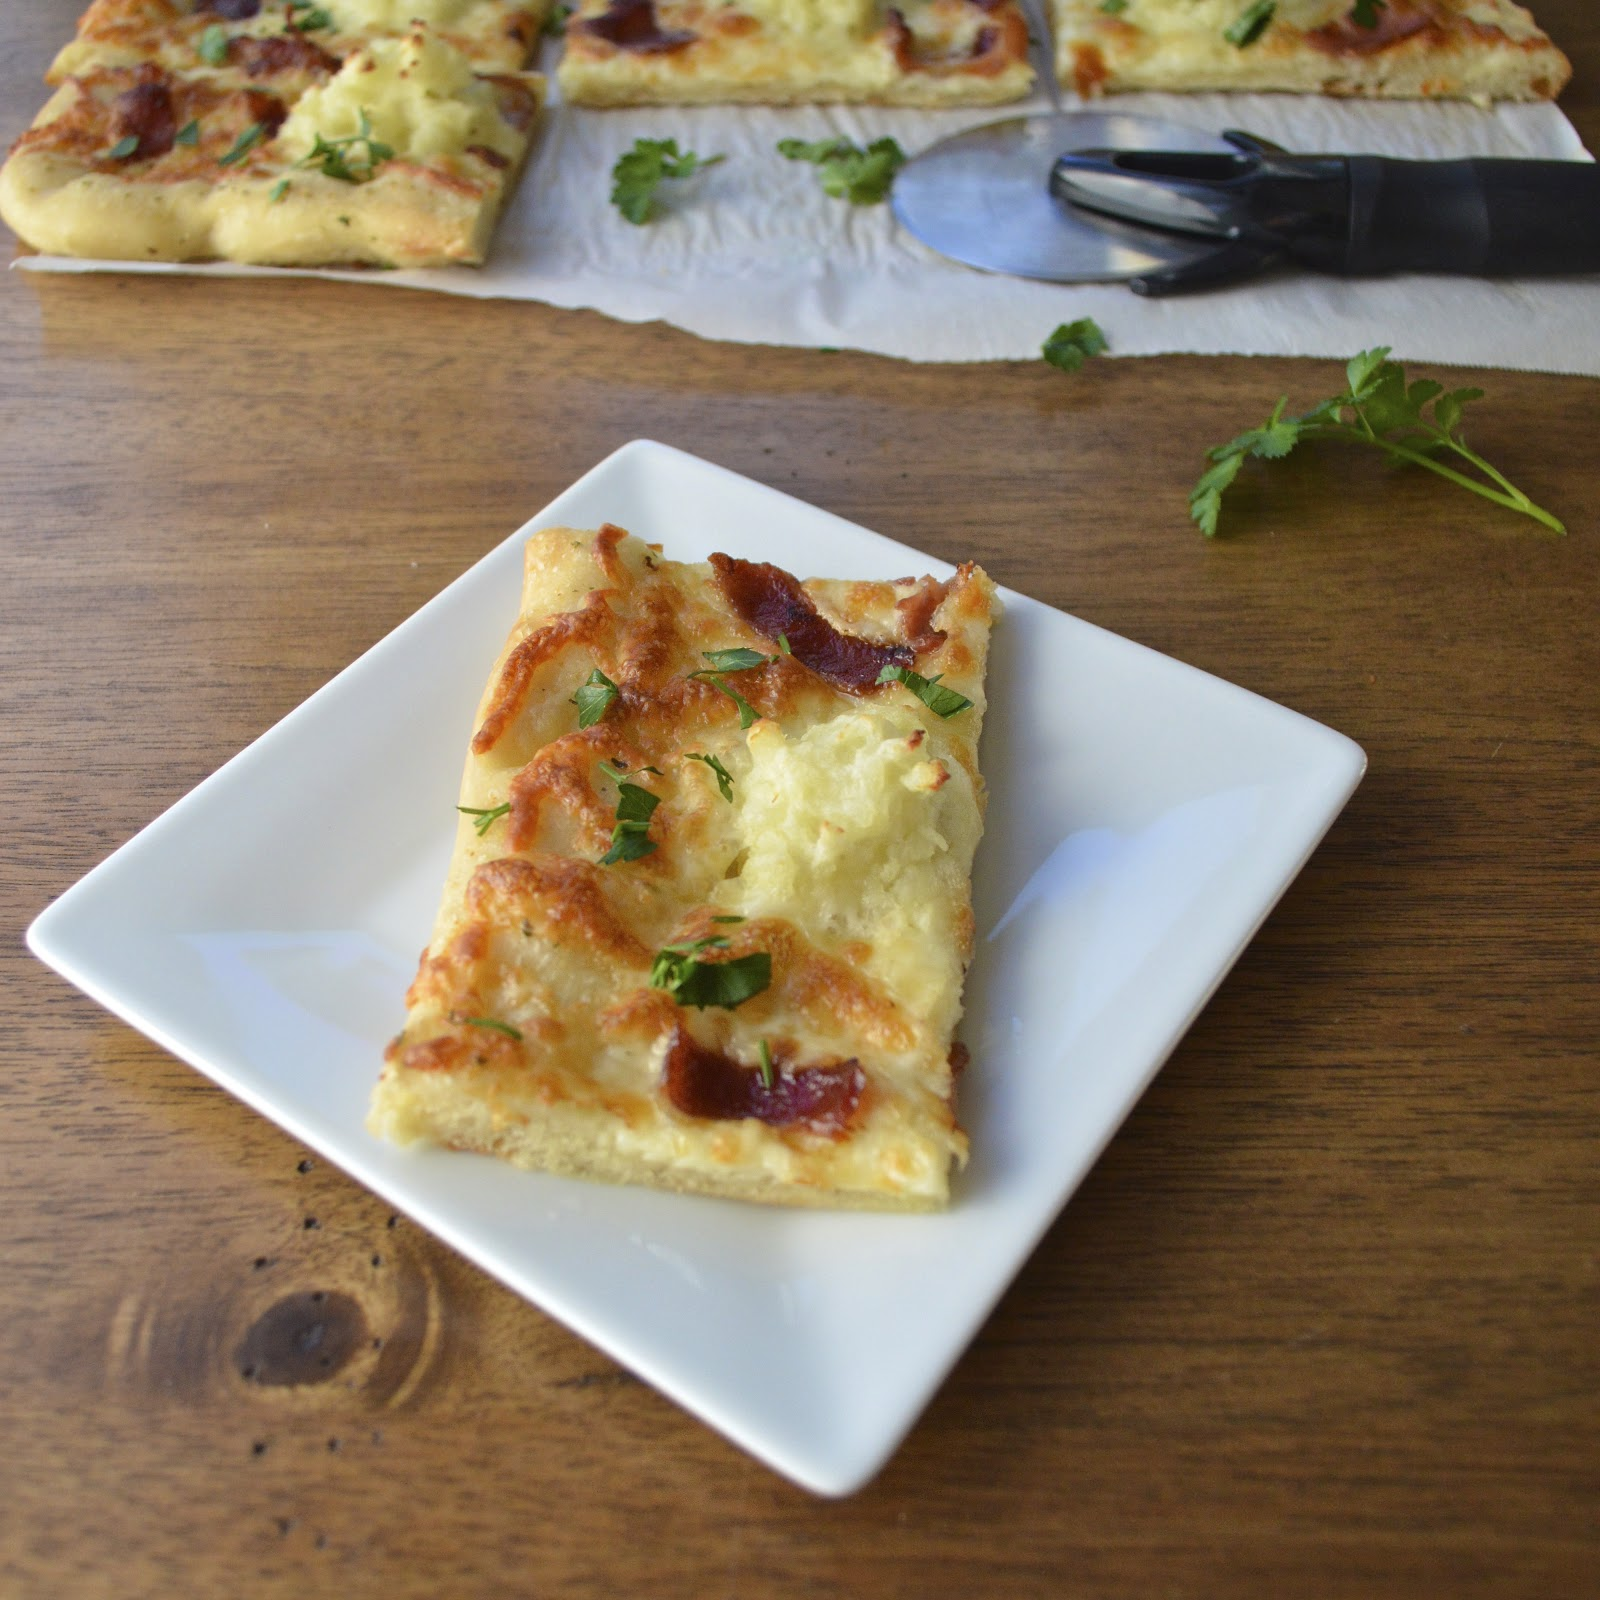 ... Potato and Bacon Pizza | Virtually Homemade: Mashed Potato and Bacon